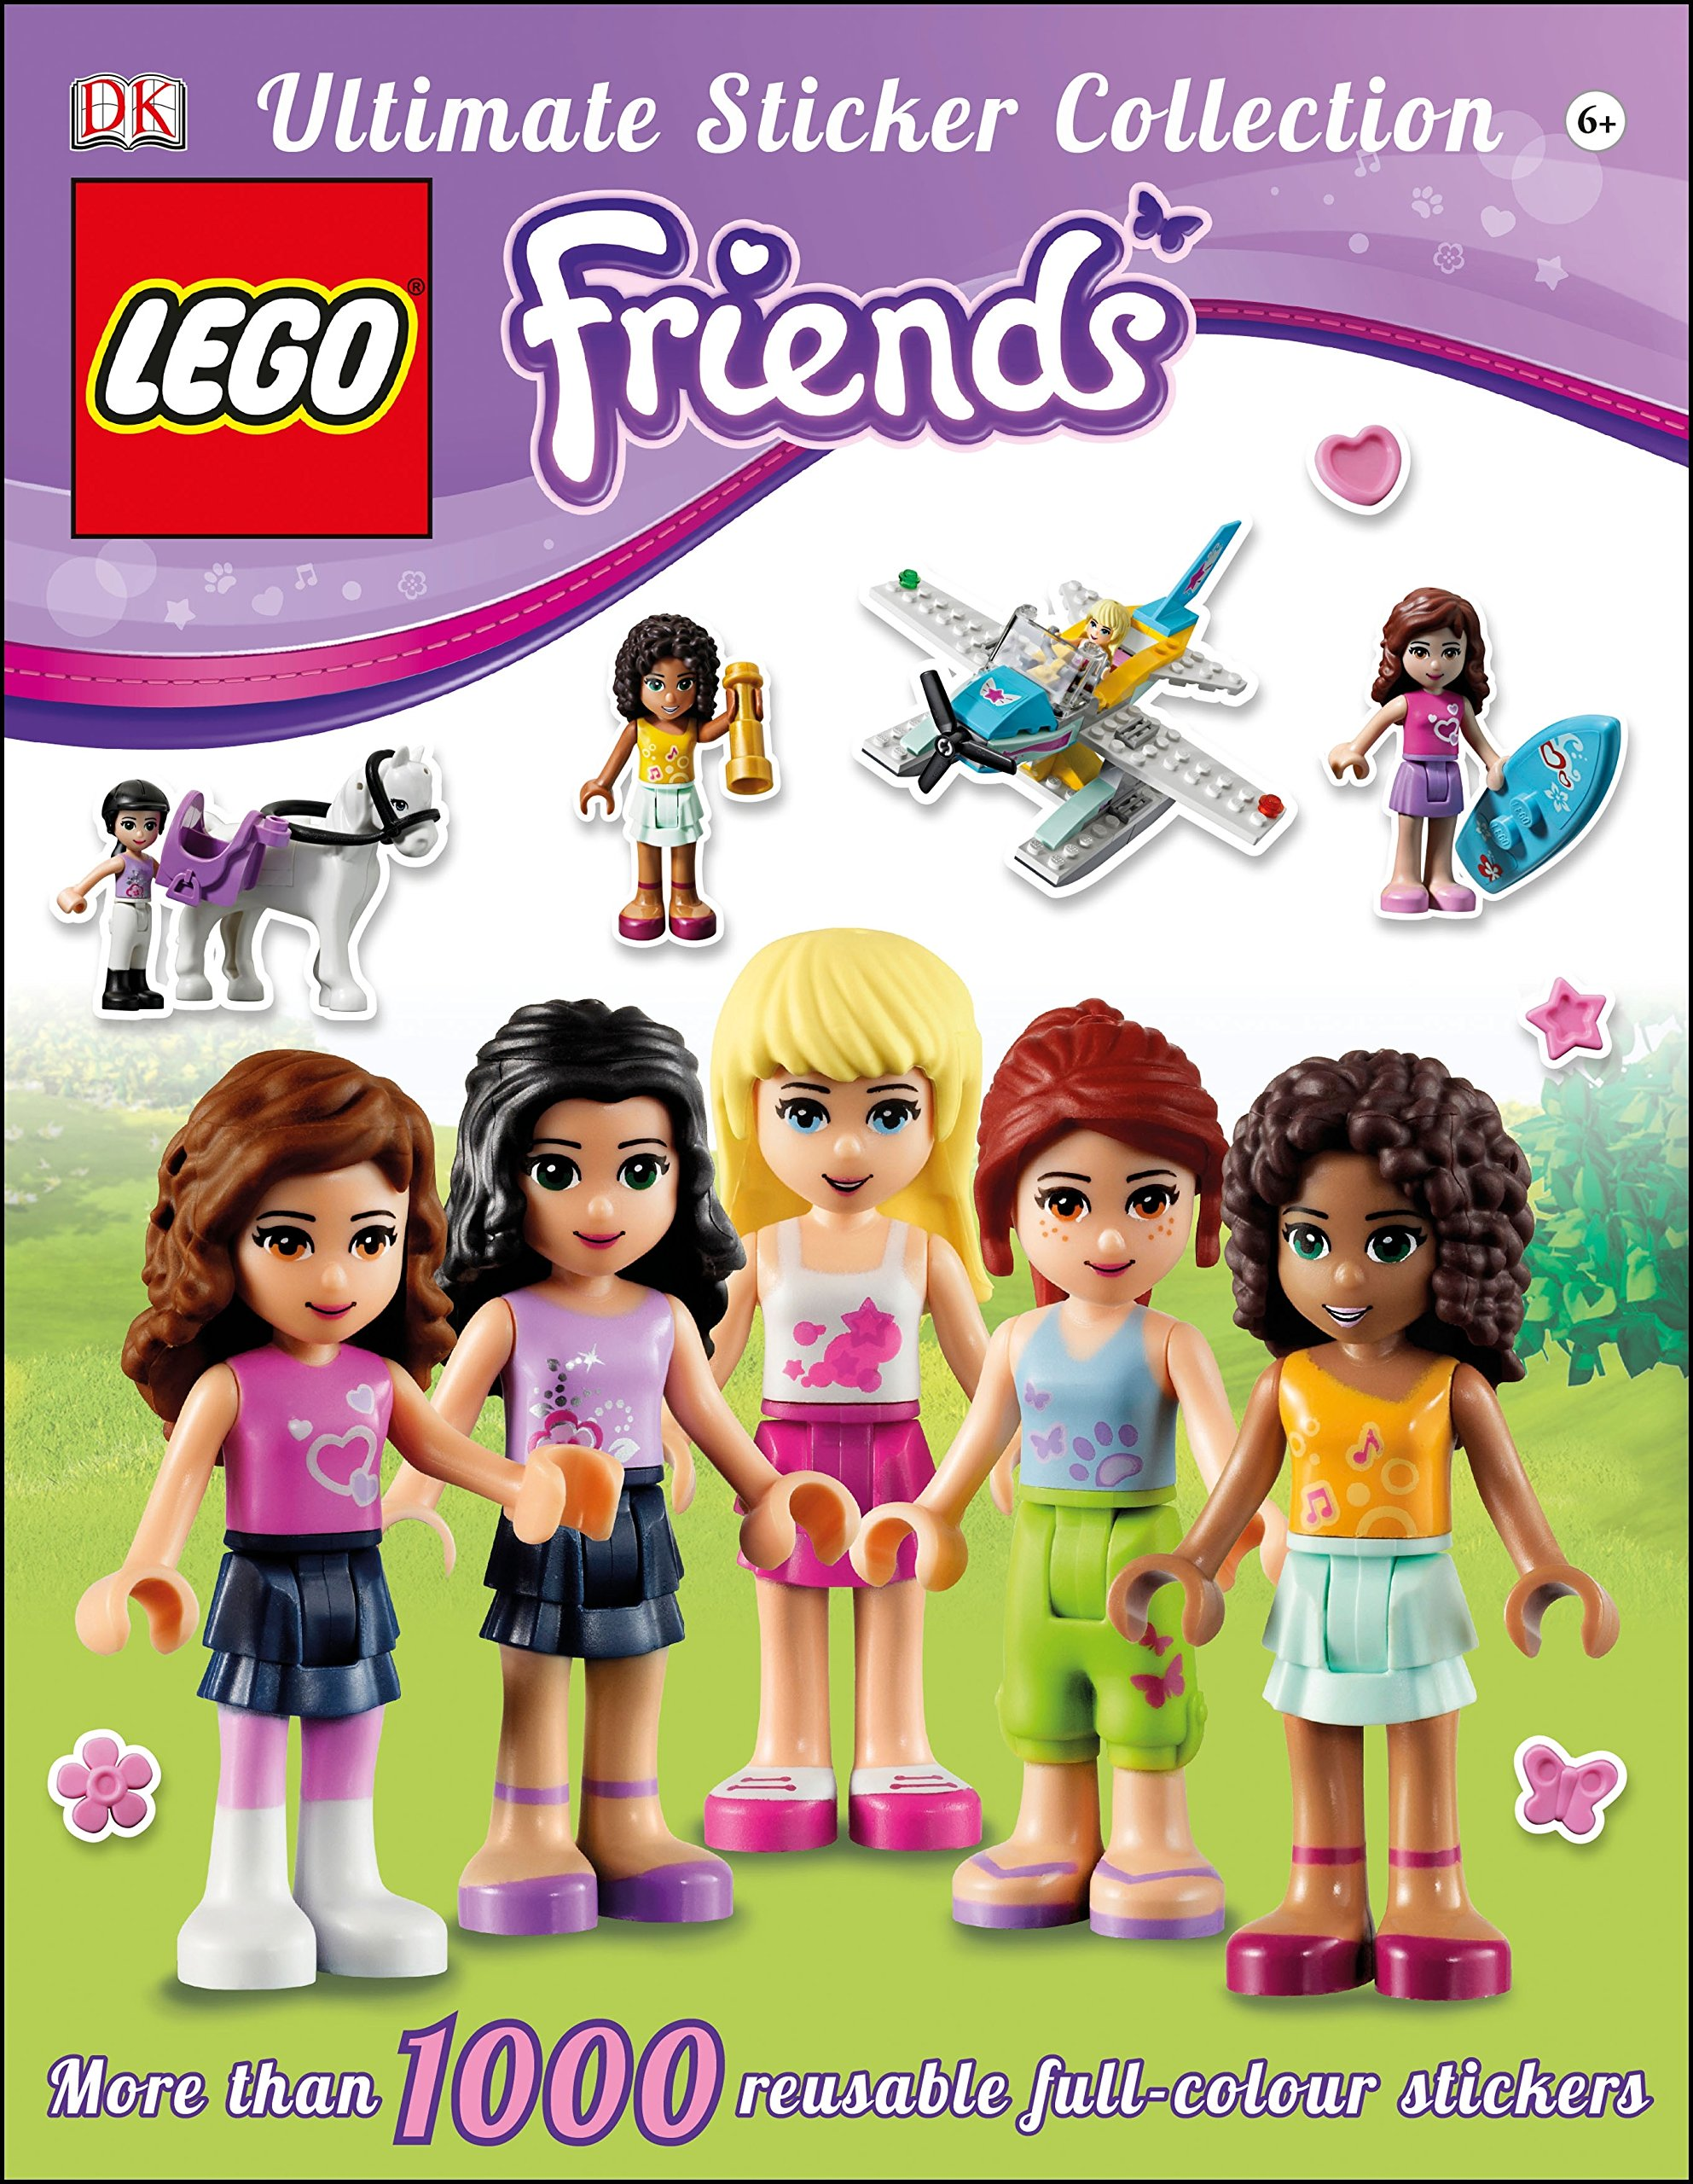 Lego Friends magazine issue 23 Lego toy and stickers